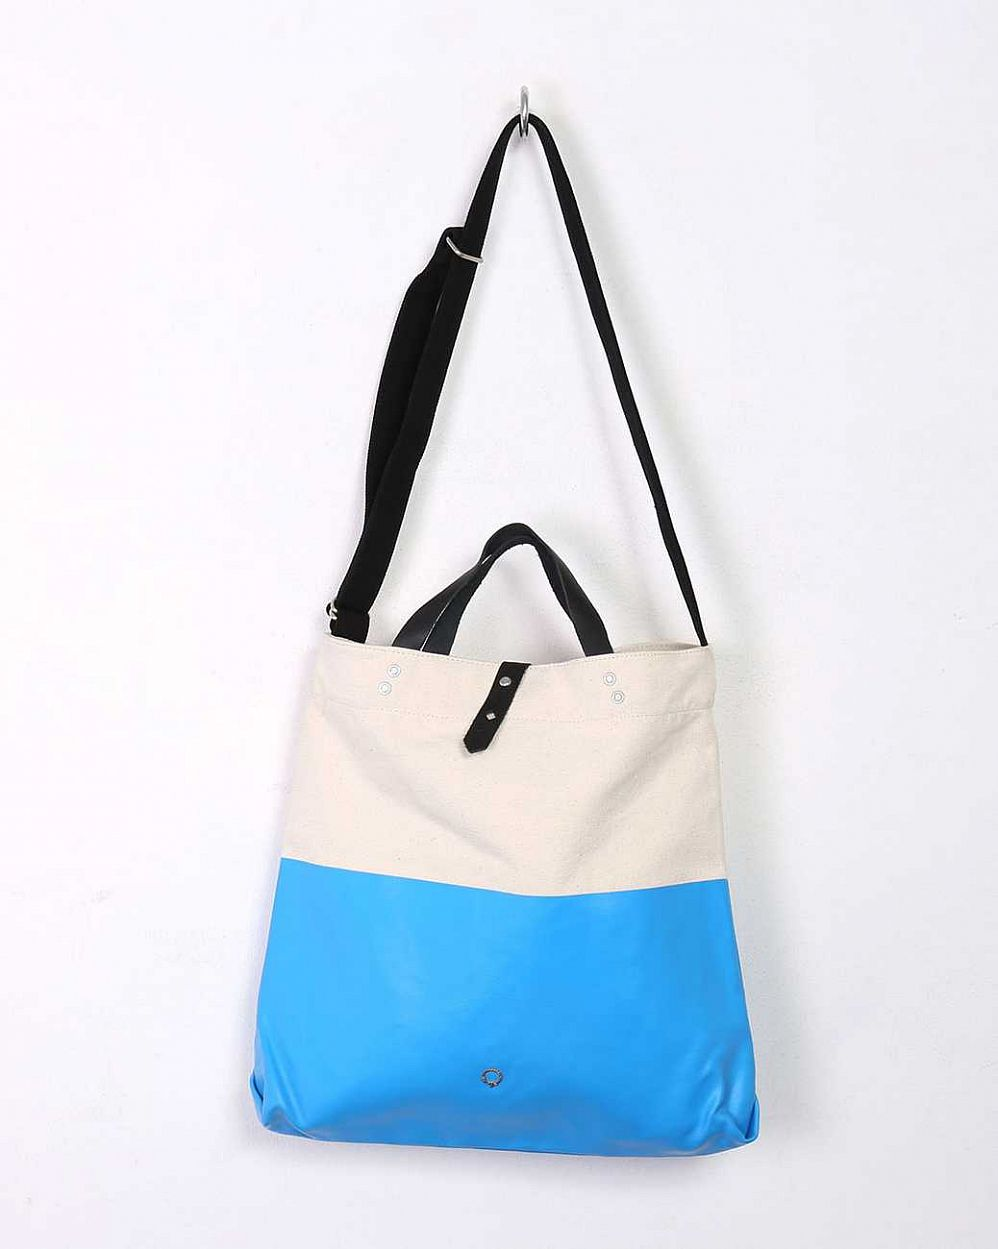 купить Сумка Stighlorgan Kavan Canvas Leather Sholder Tote Cyan в Москве